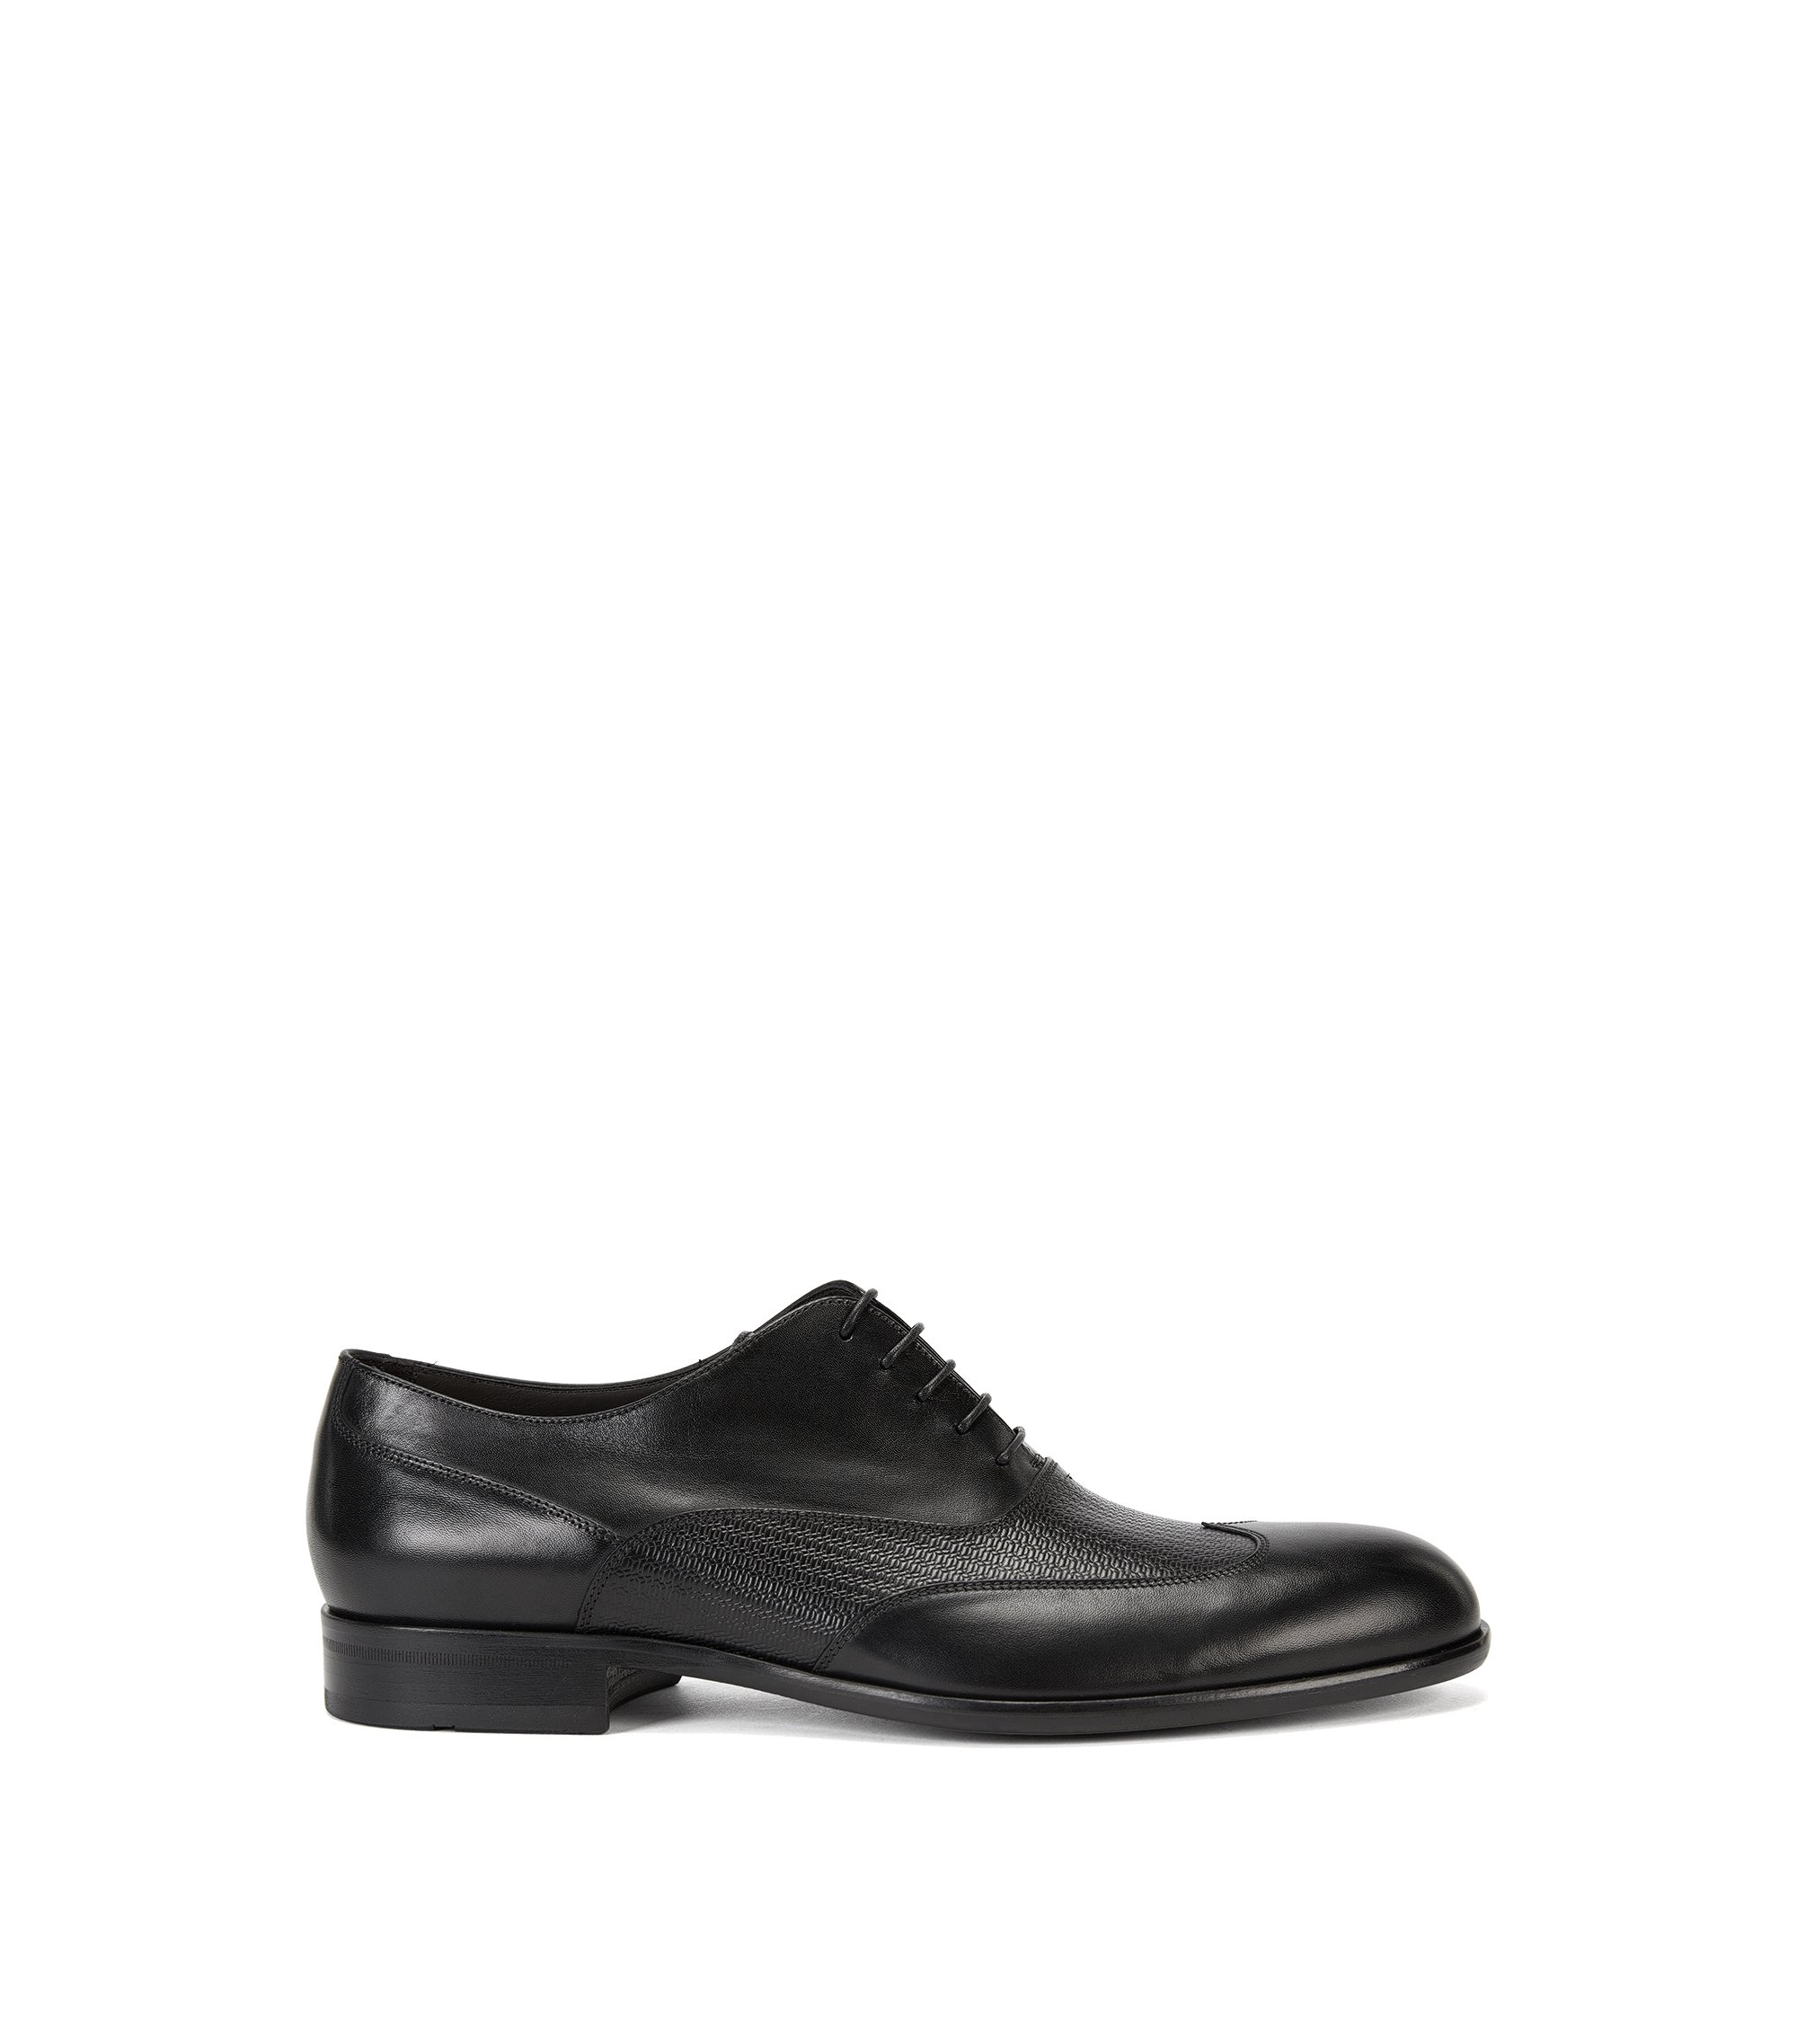 Leather Oxford shoes with printed detail, Black